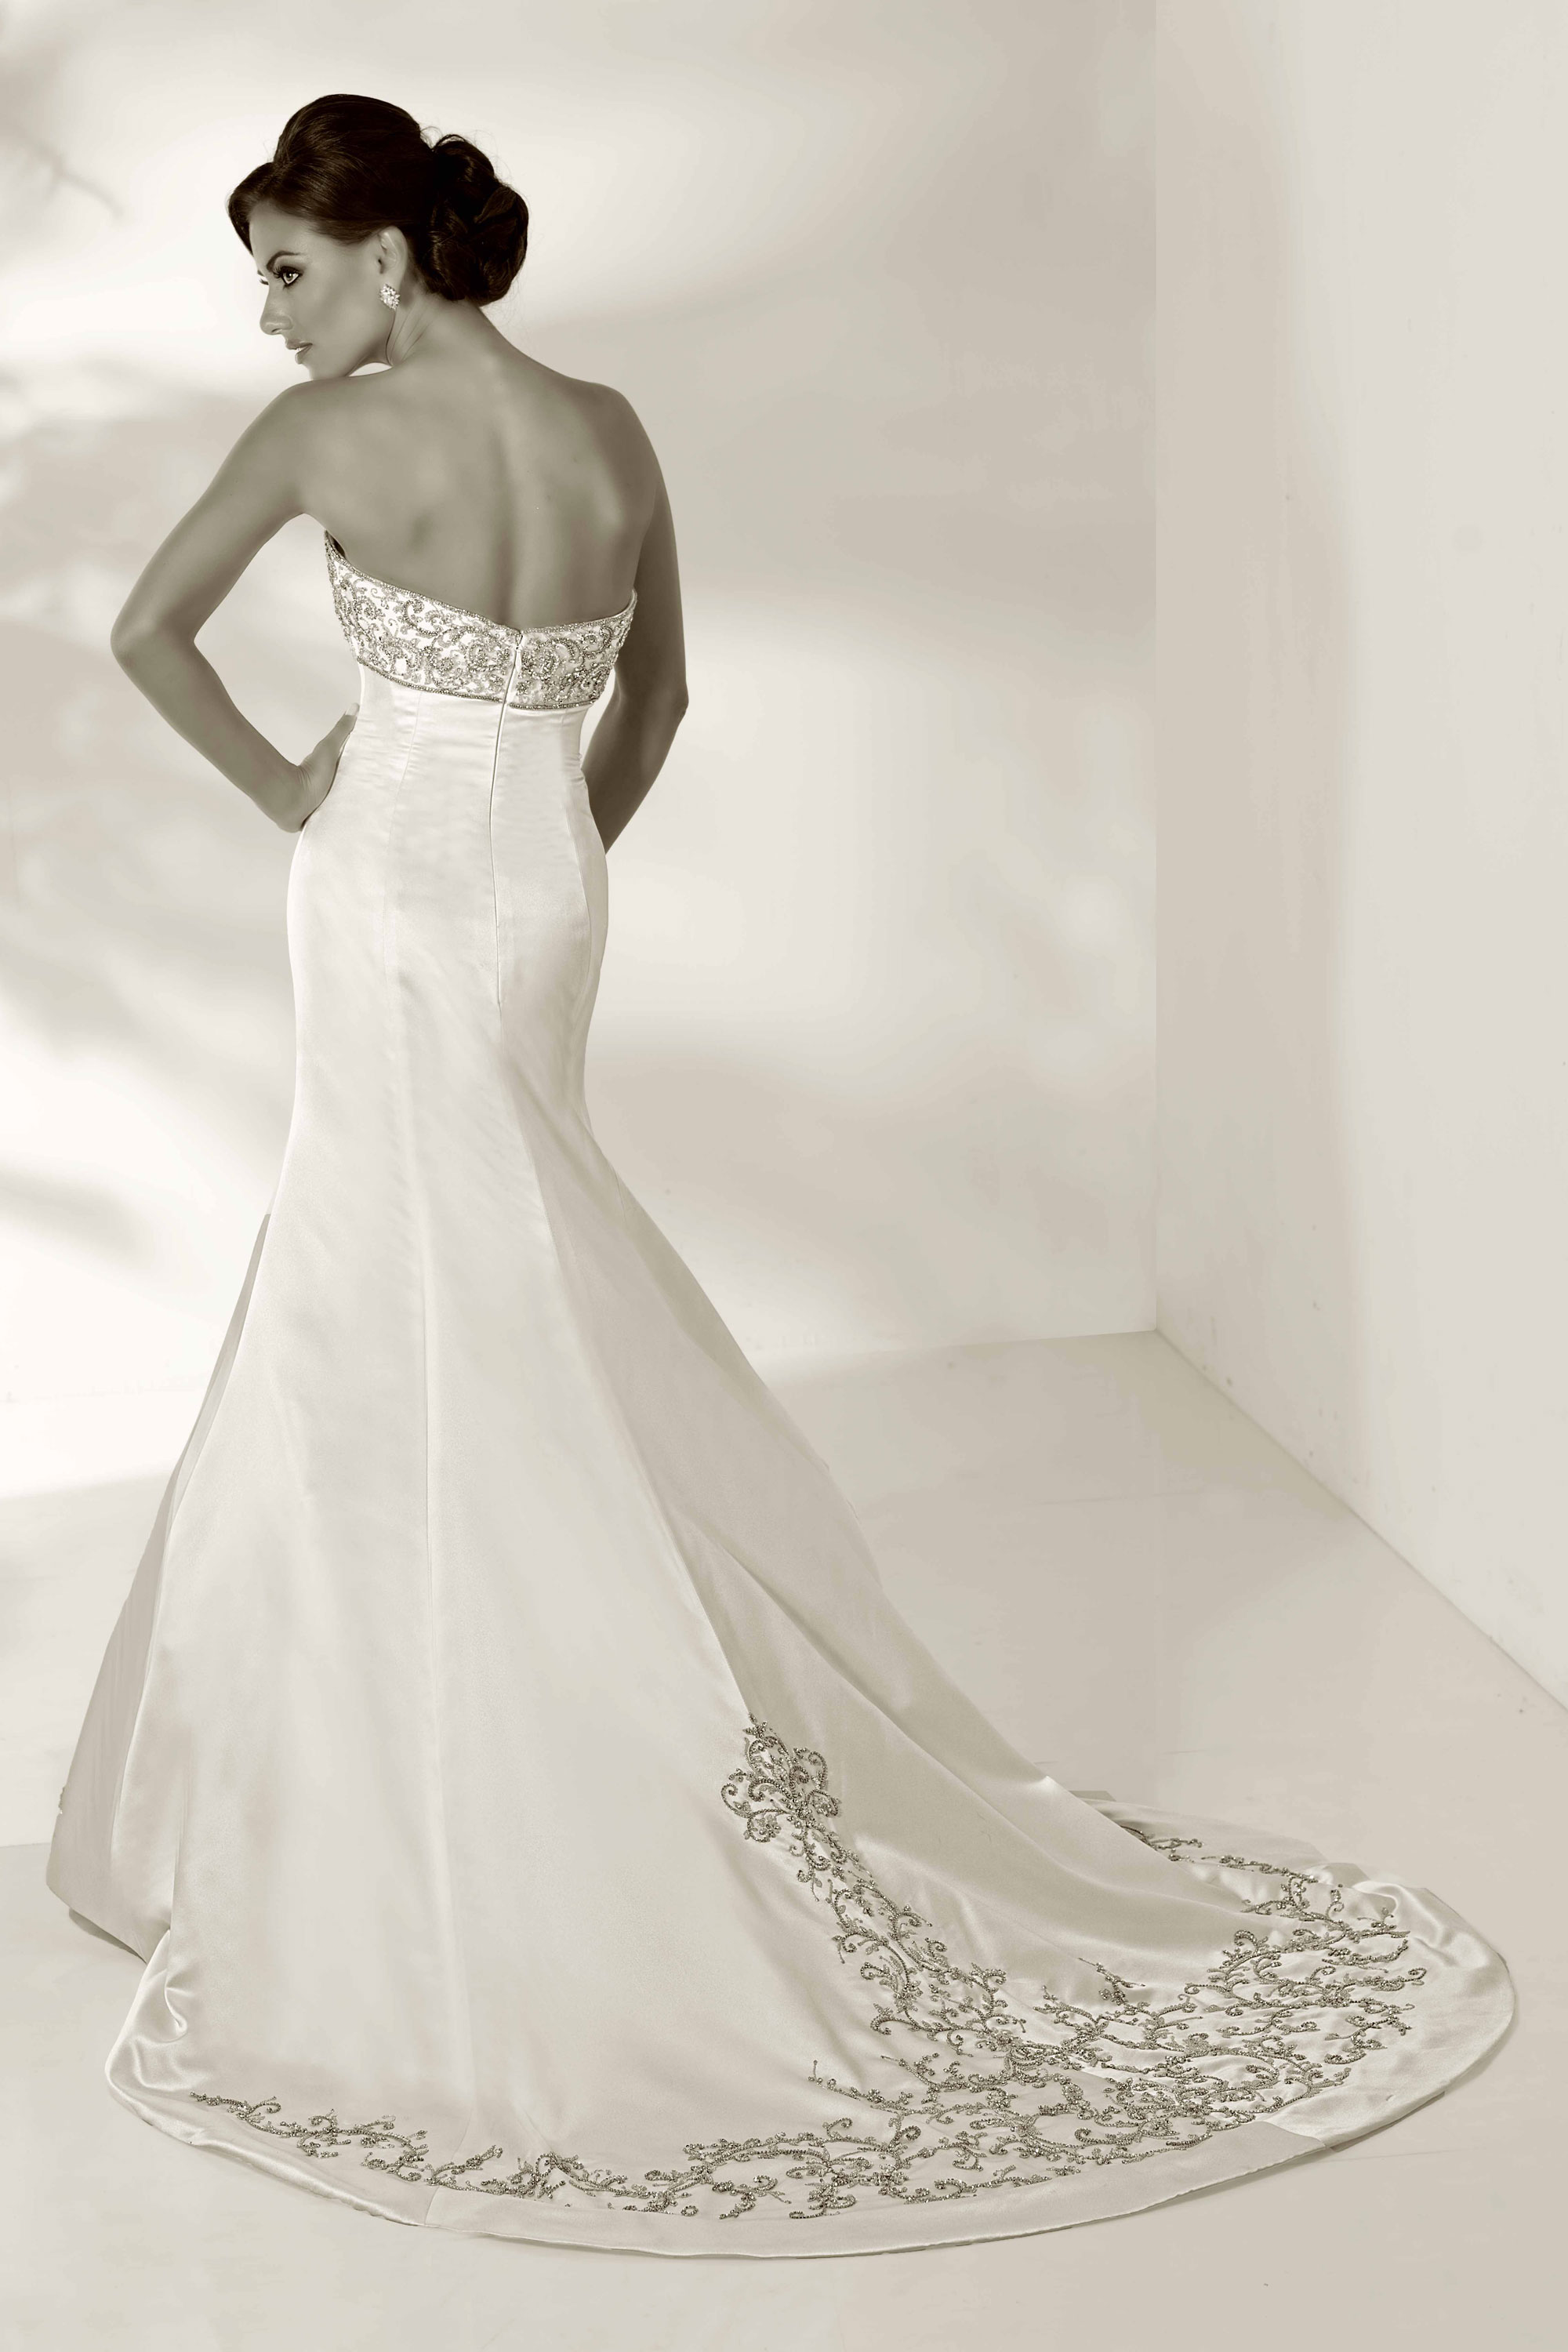 cristiano-lucci-wedding-dresses-9-01052014